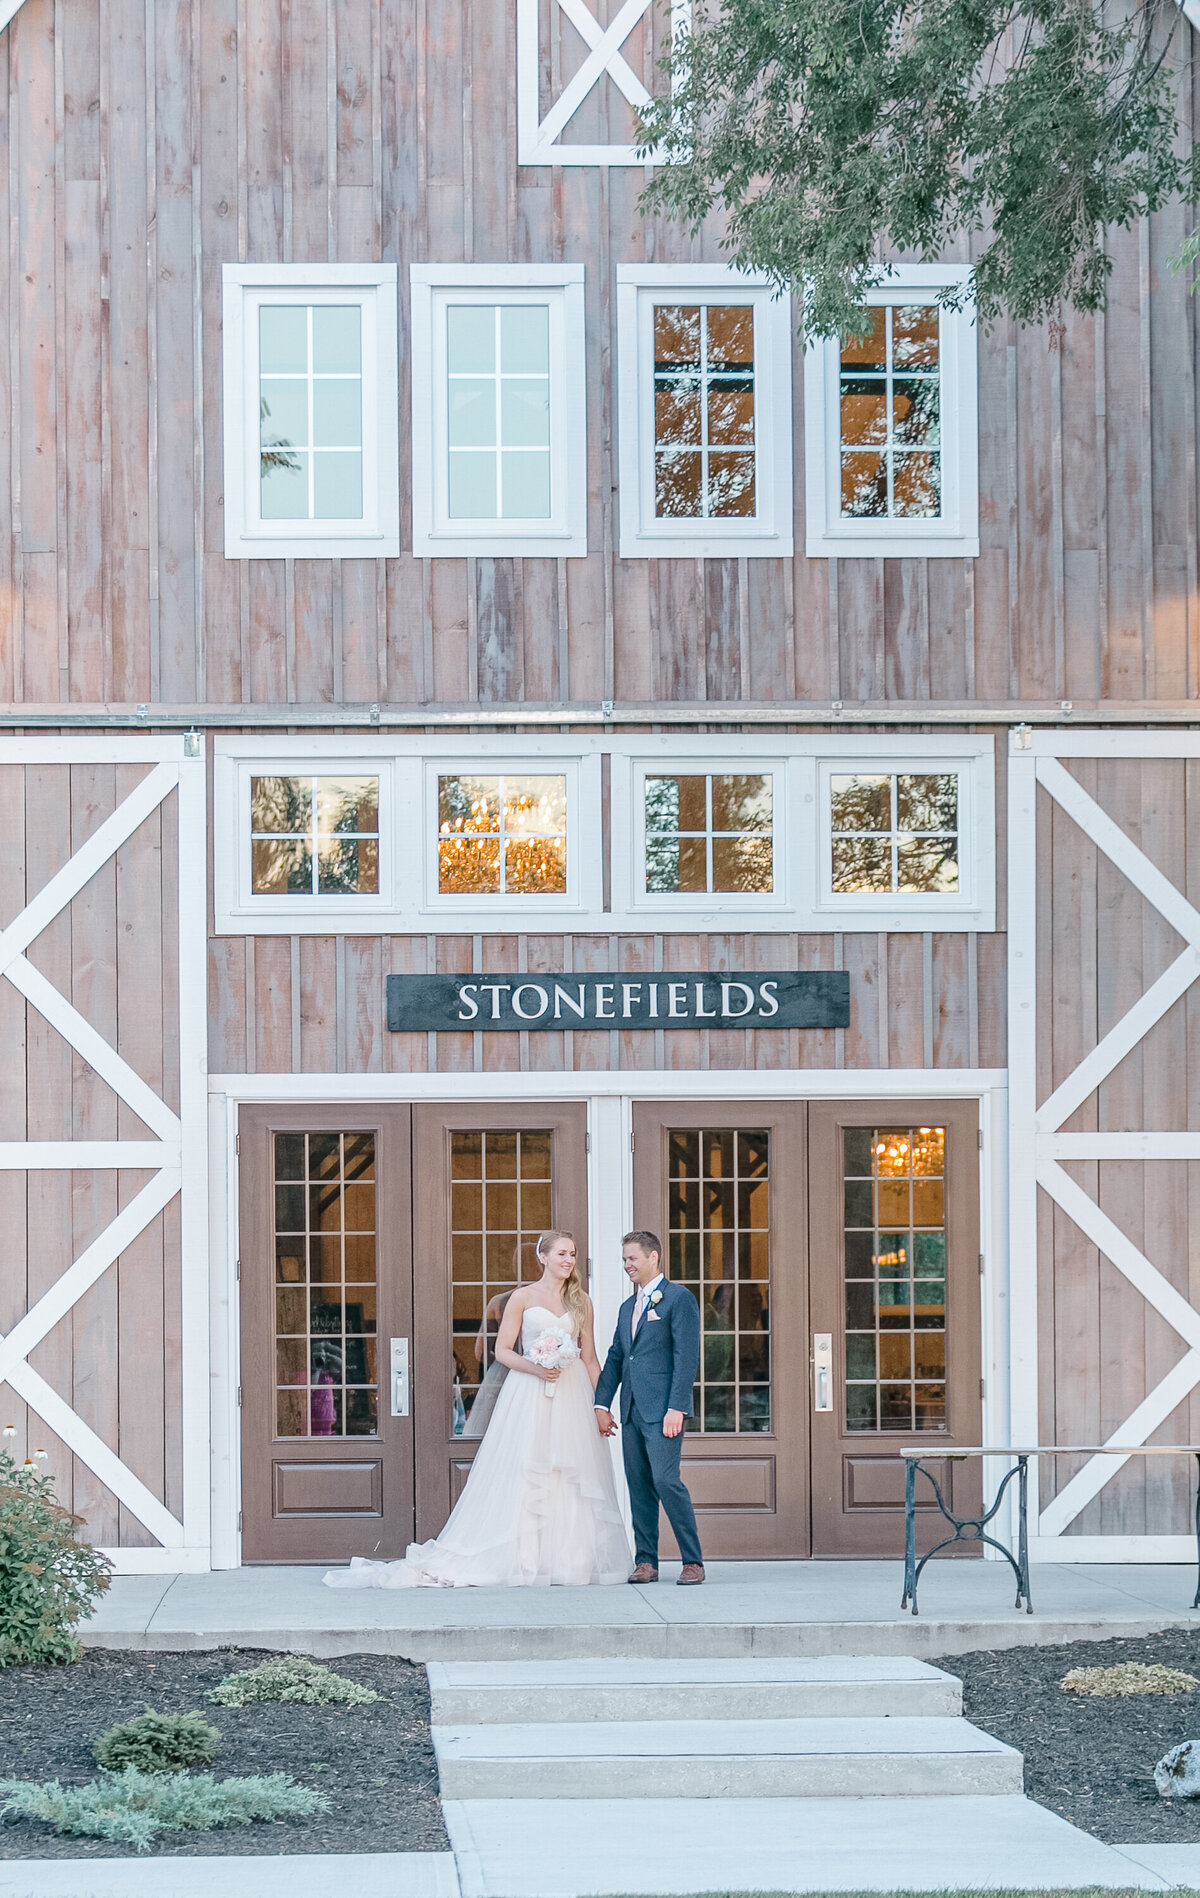 Stonefields-weddings-events-beckwith-wedding-light-airy-grey-loft-studio-90